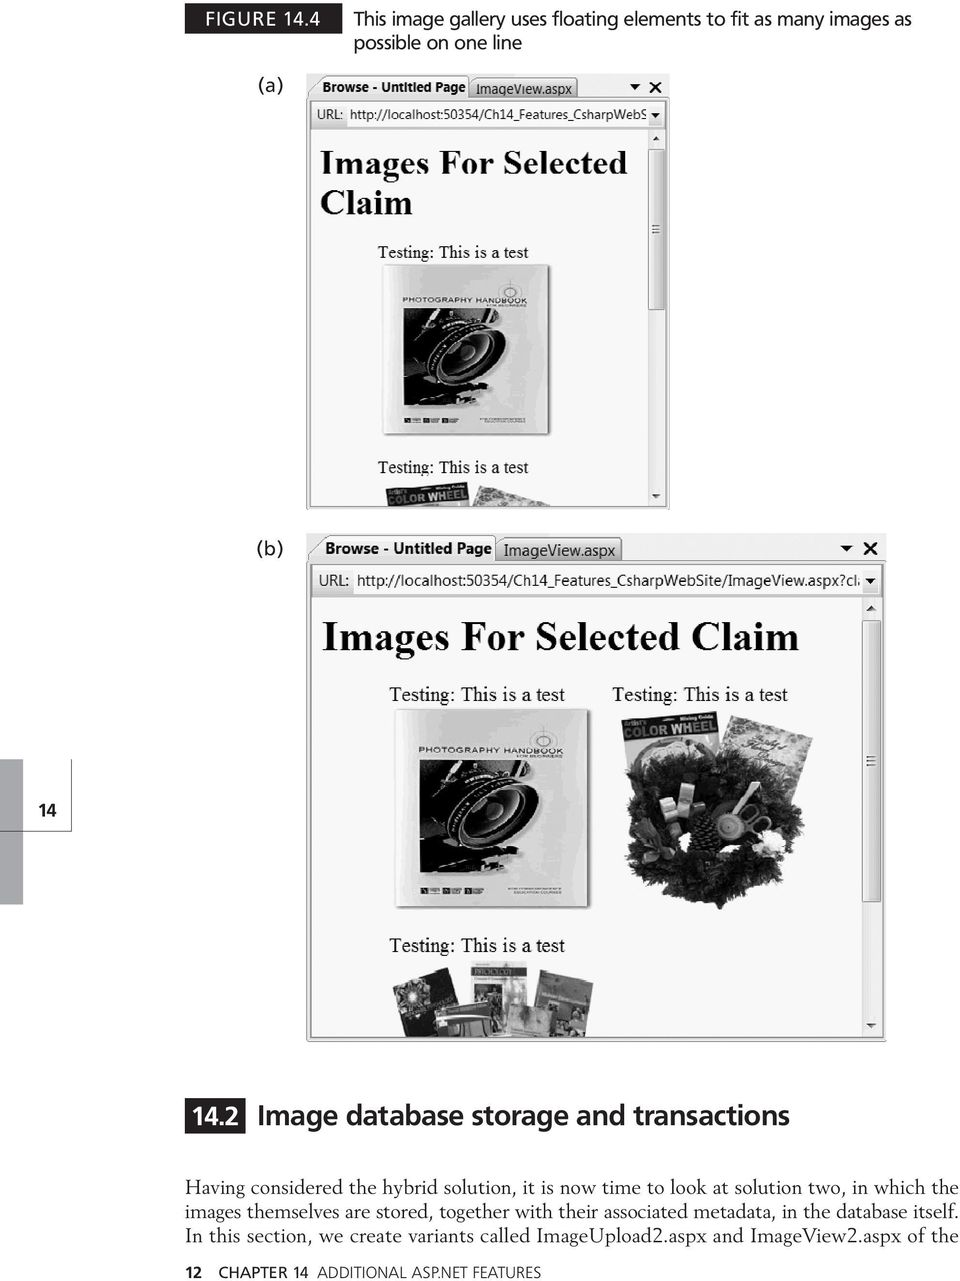 solution two, in which the images themselves are stored, together with their associated metadata, in the database